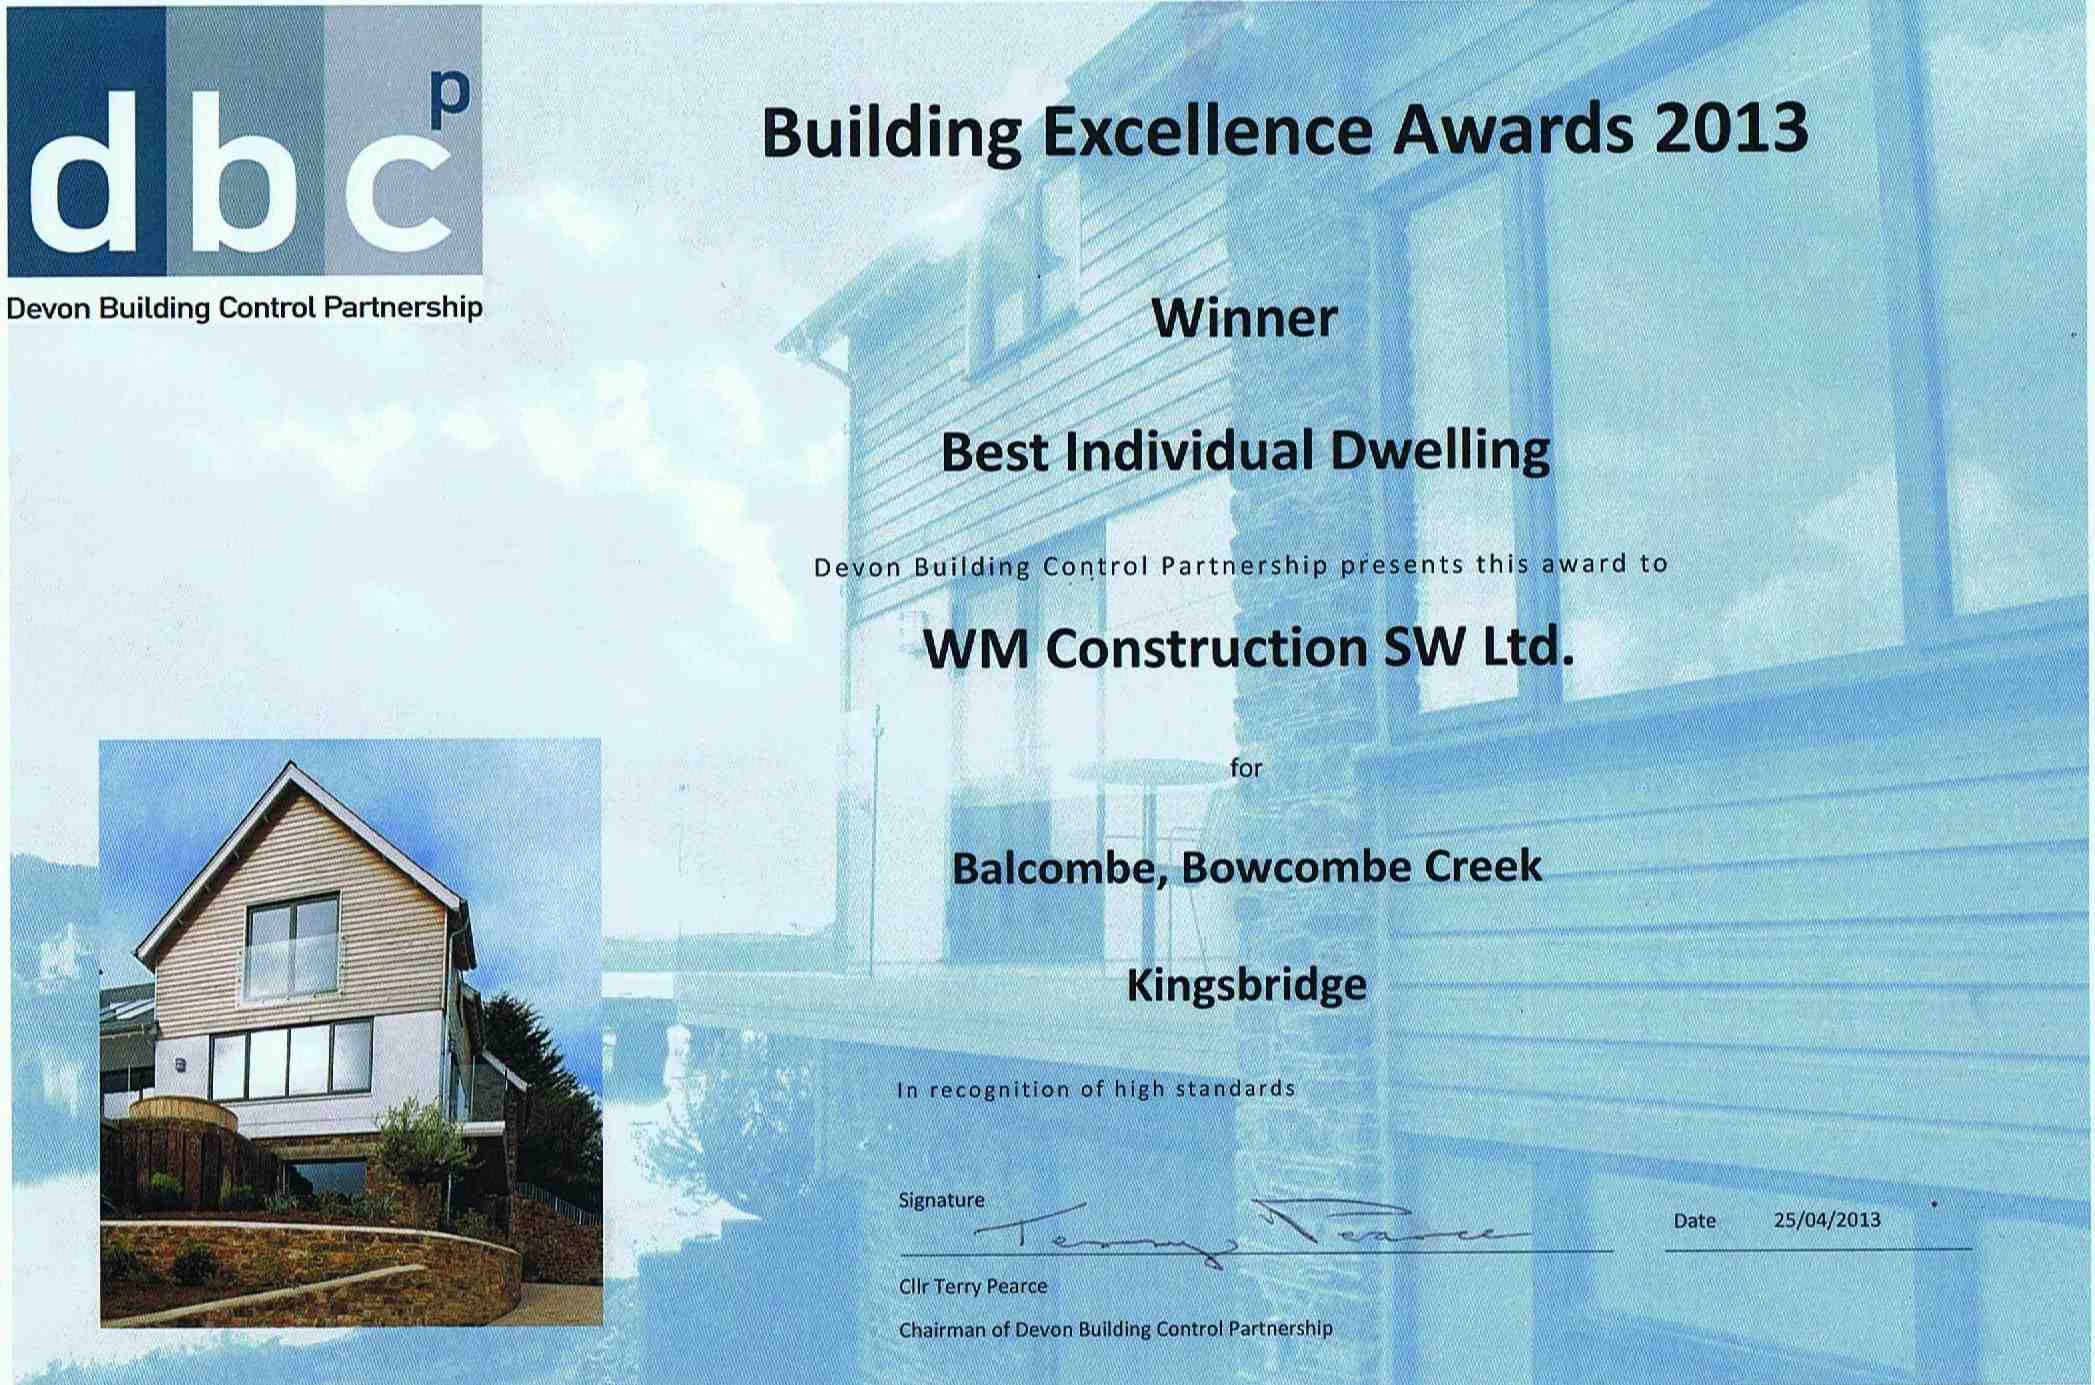 best individual dwelling award